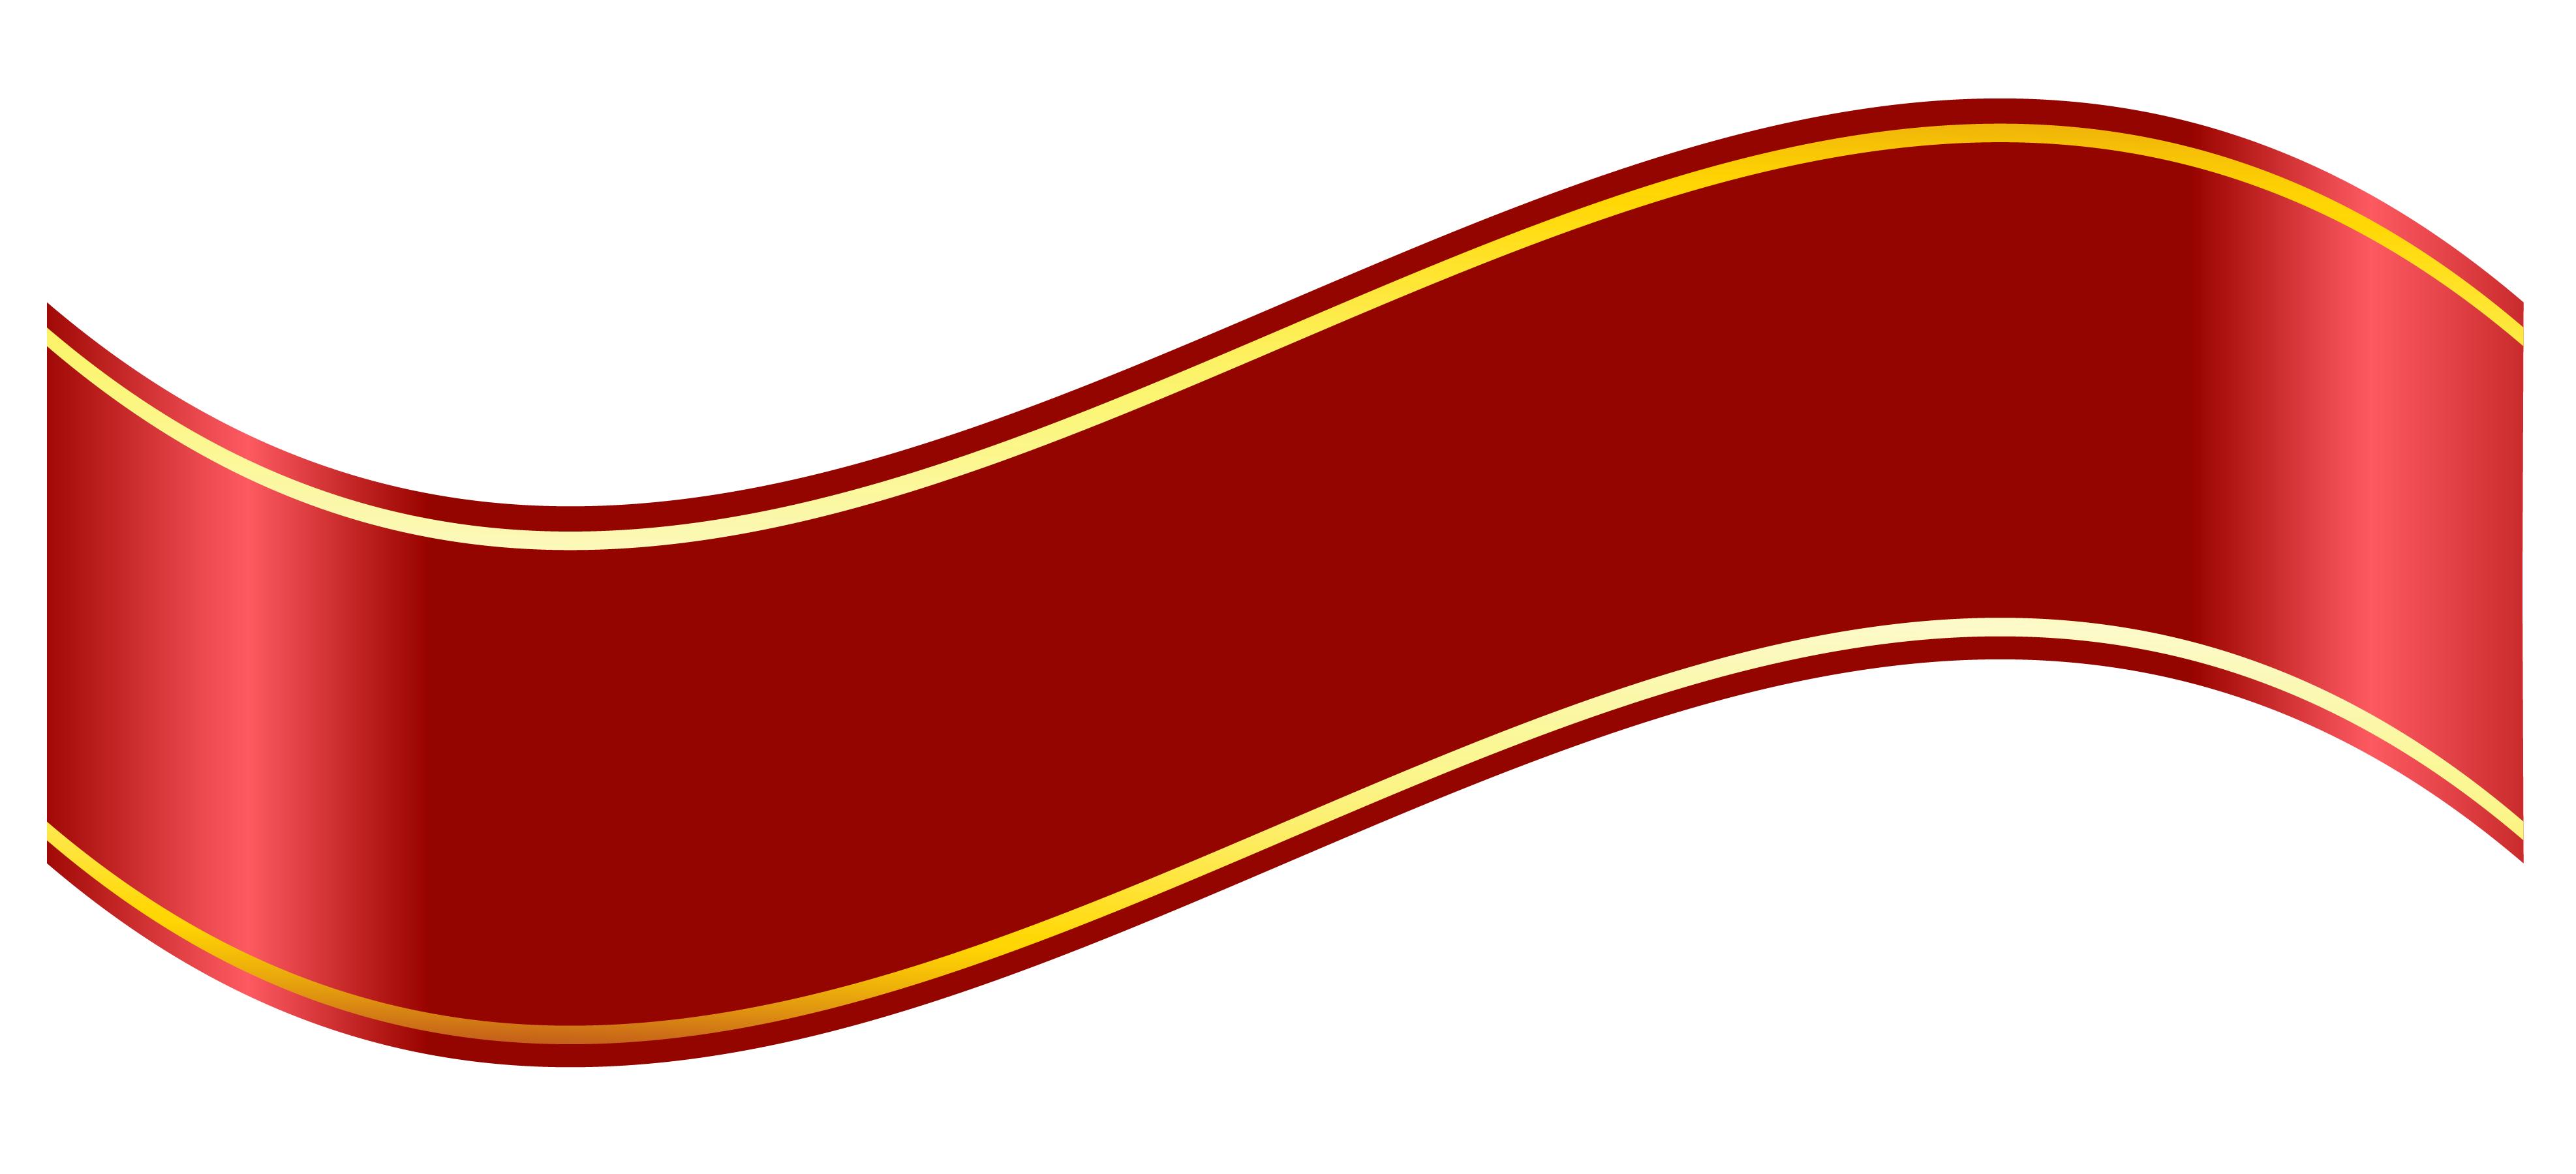 Free clipart banner. Red scroll